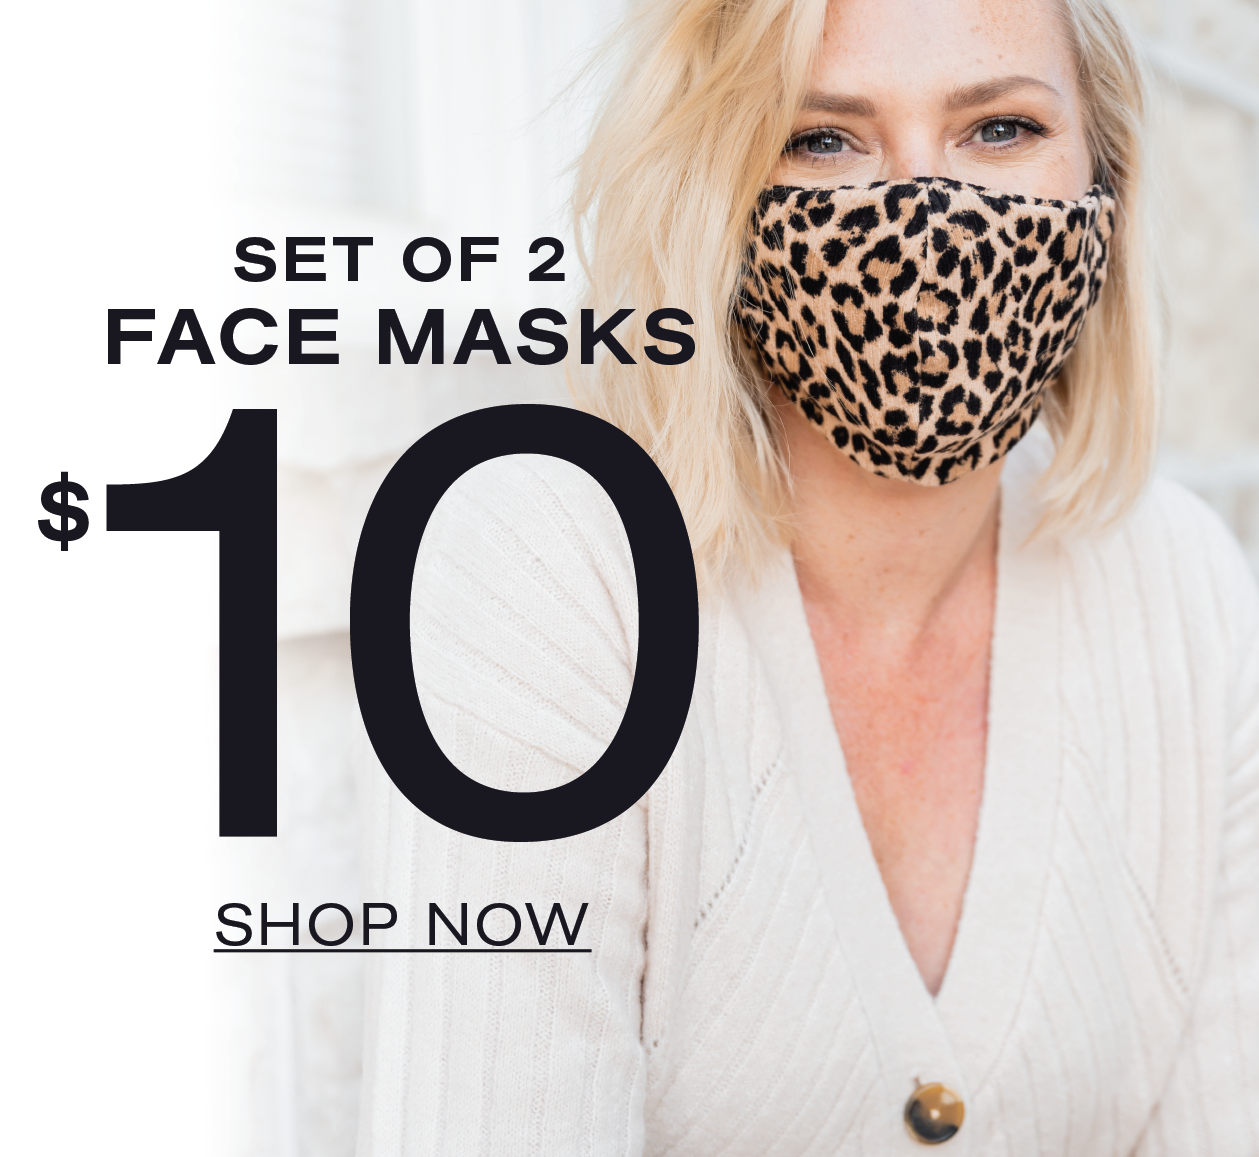 Set of 2 Fae Masks $10 Shop Now